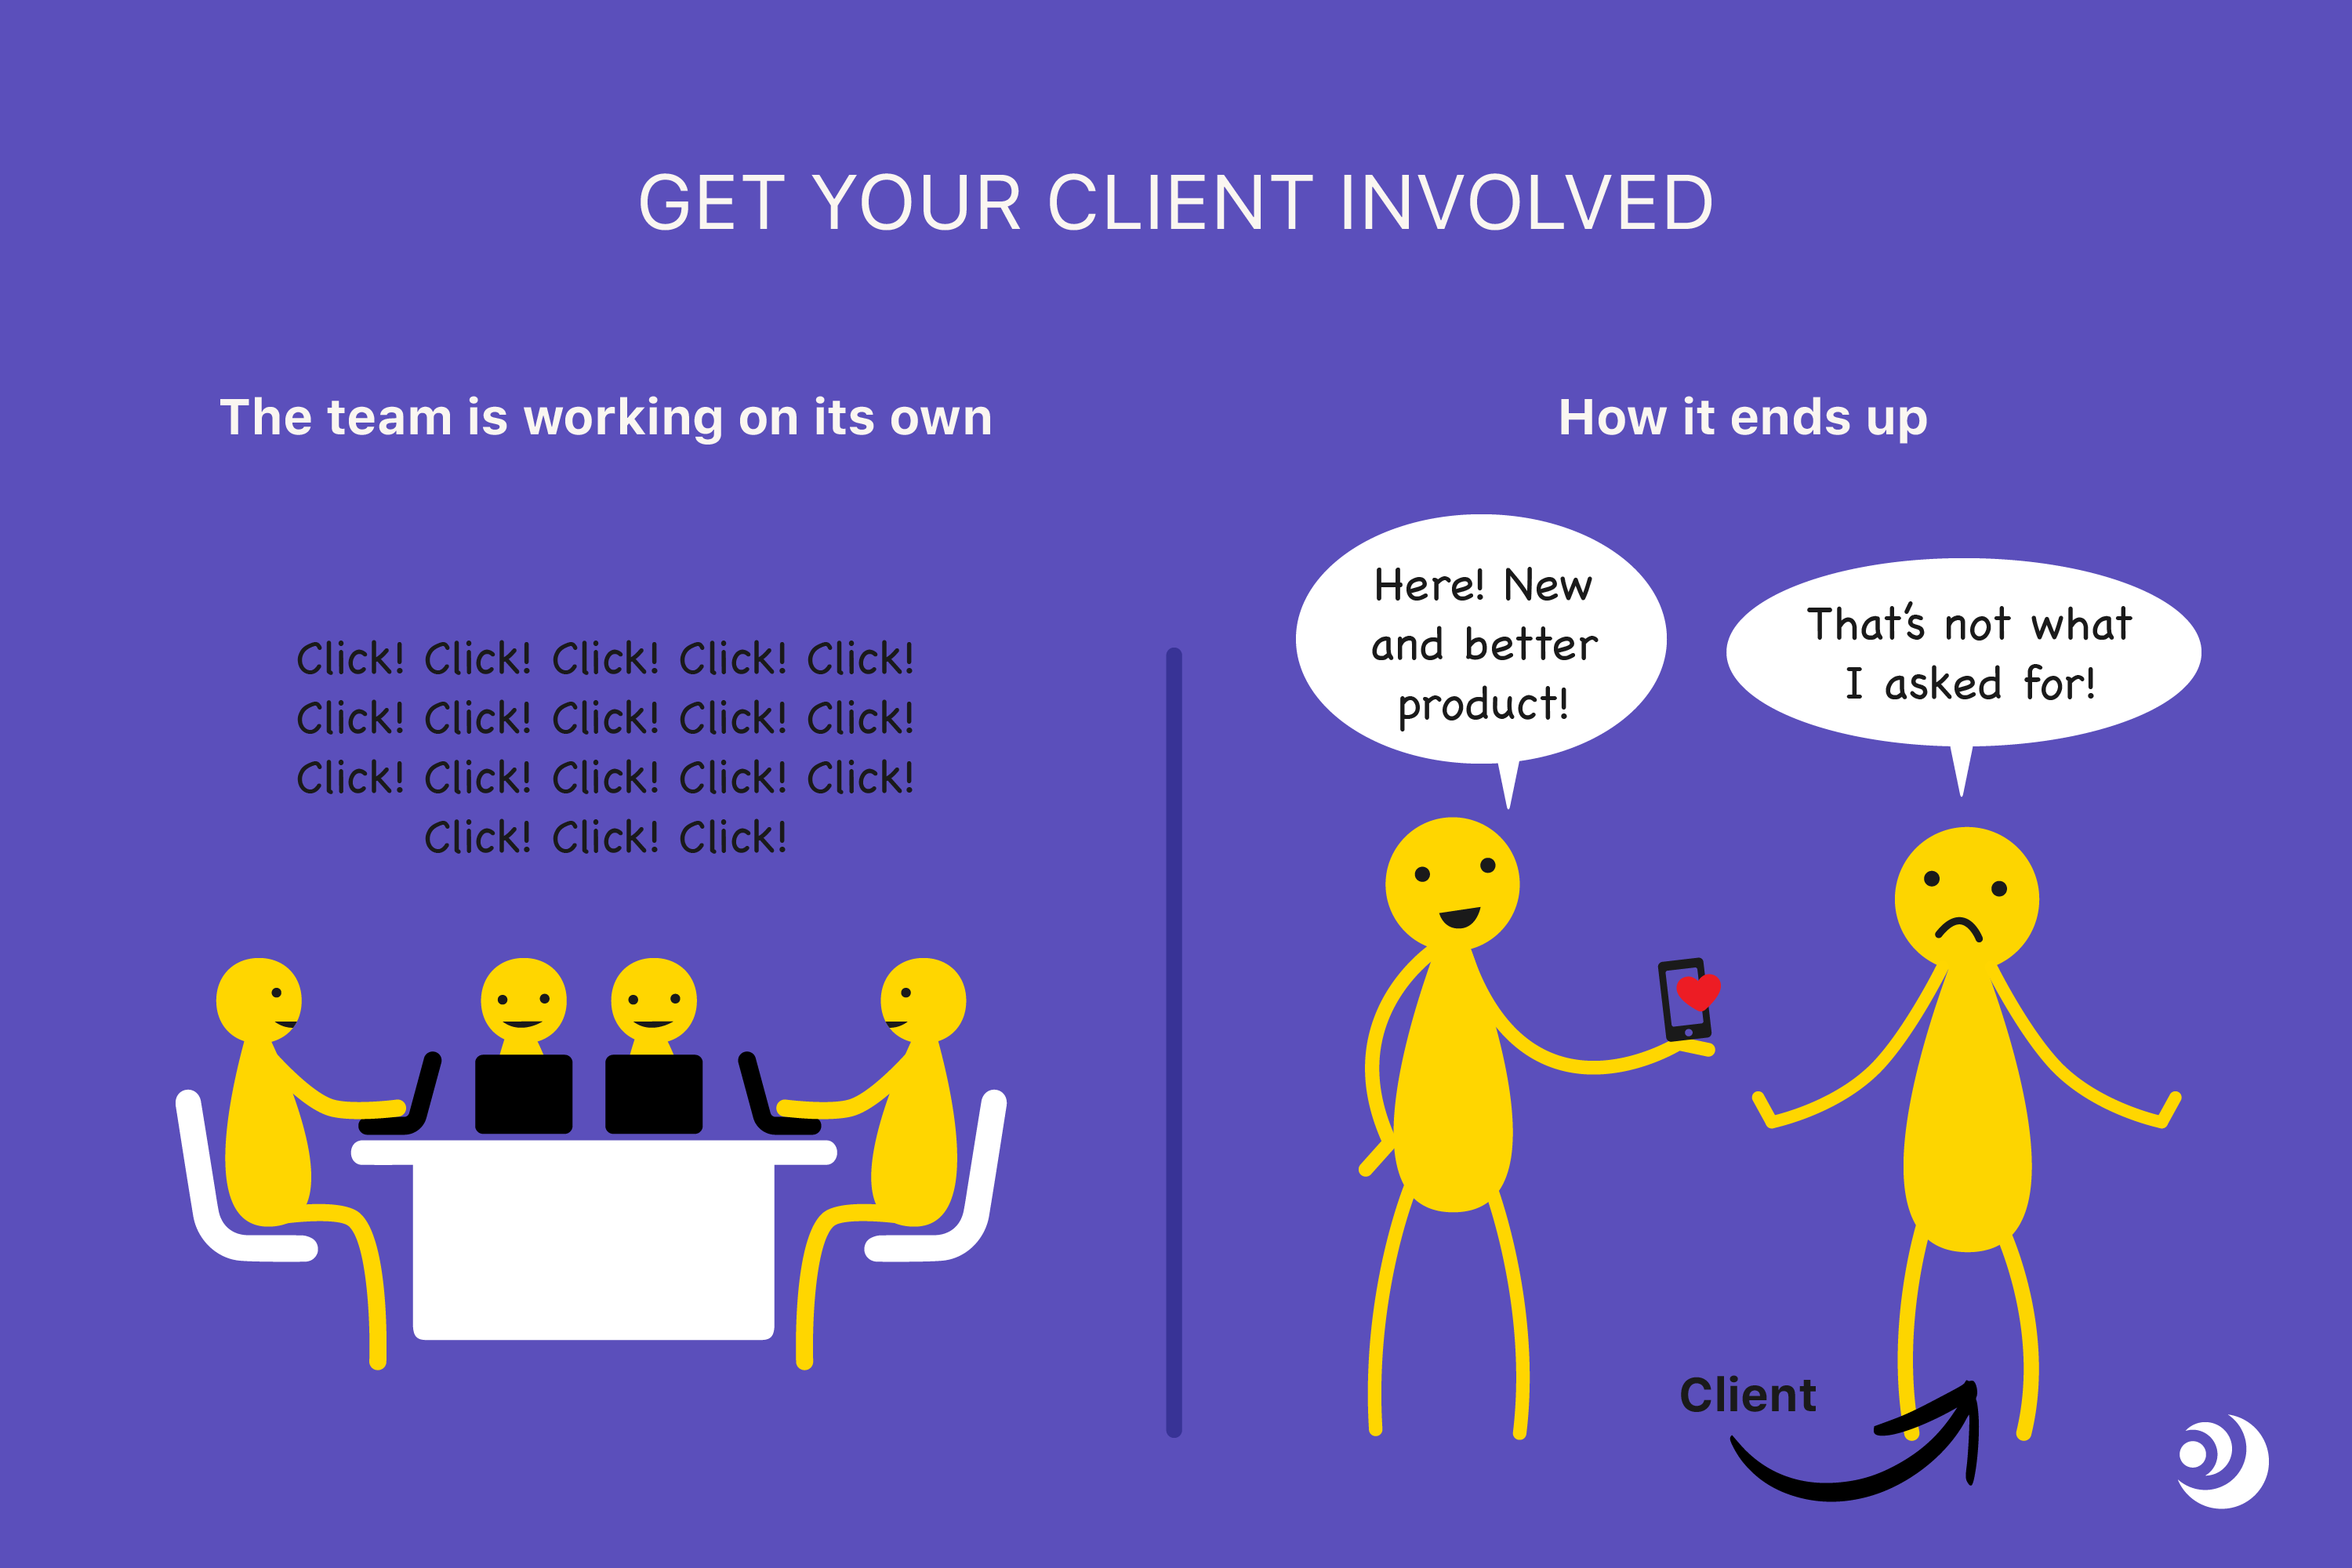 Get your client involved in the agile software development